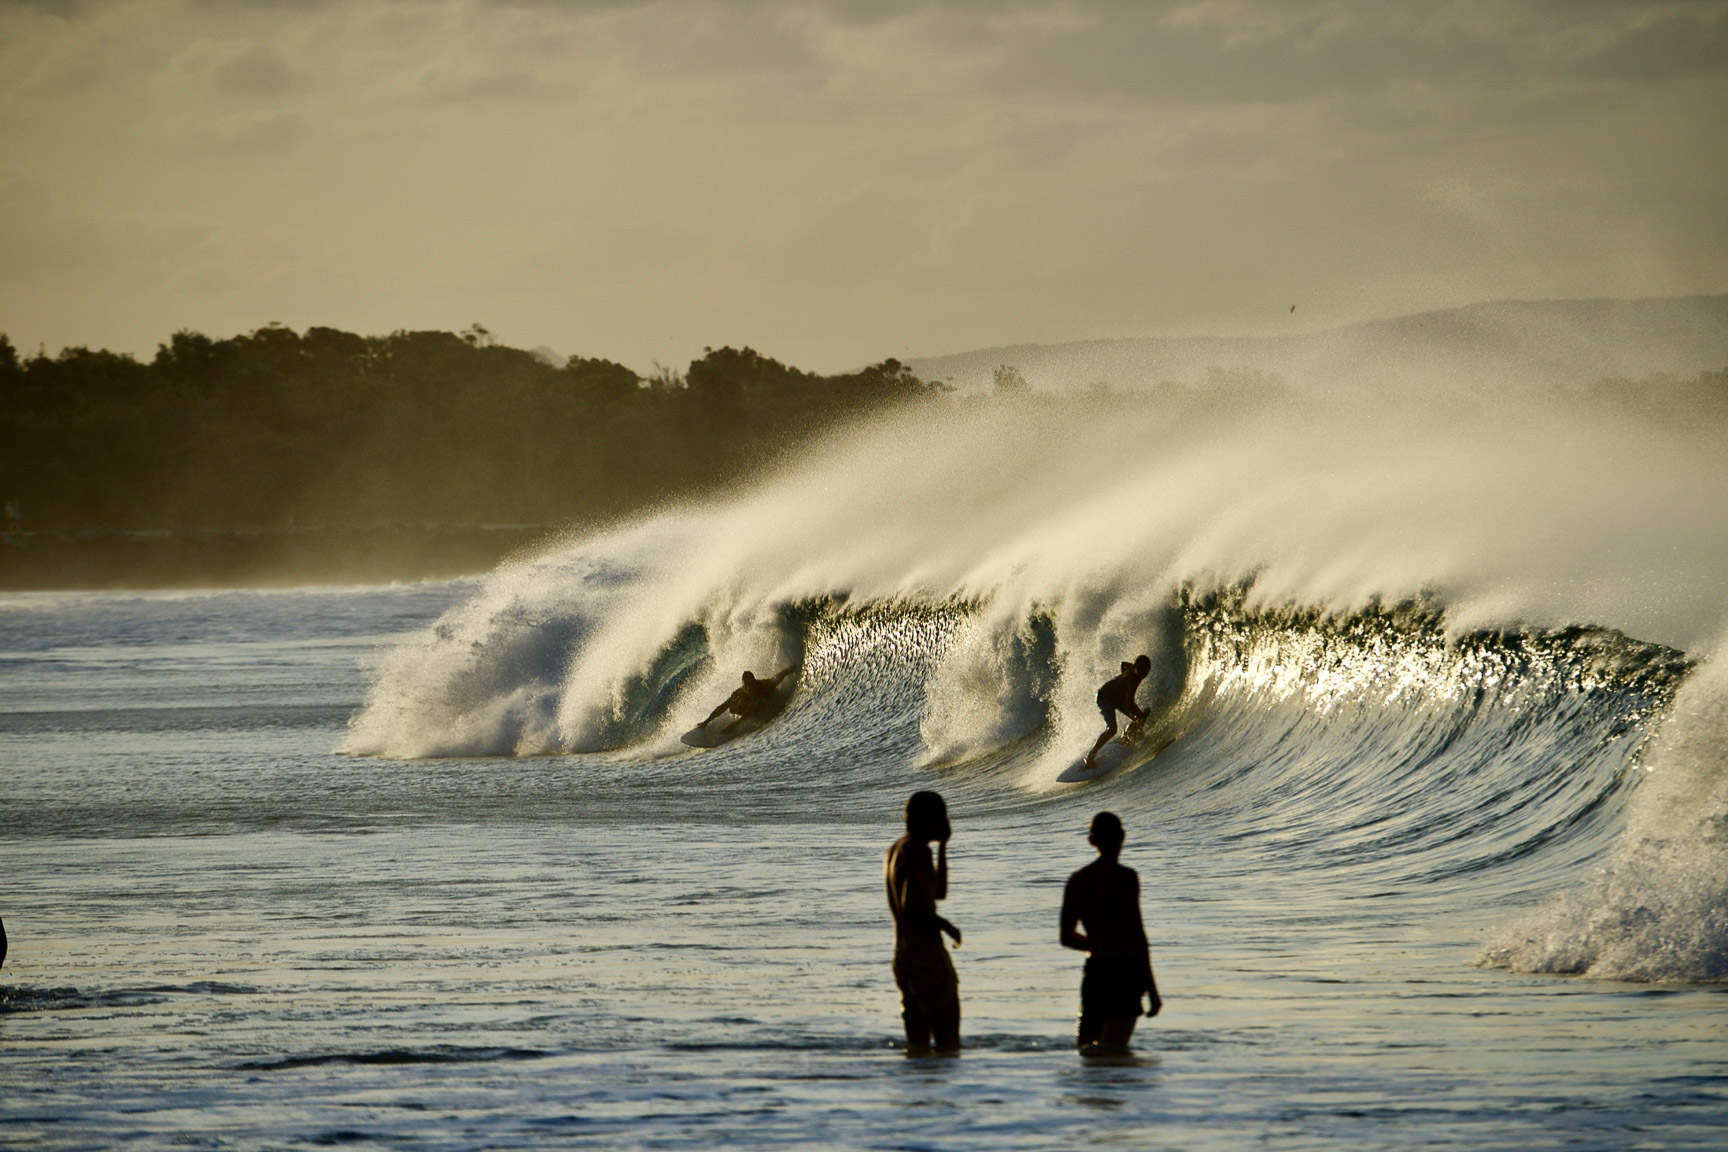 Unknown surfers, Australia